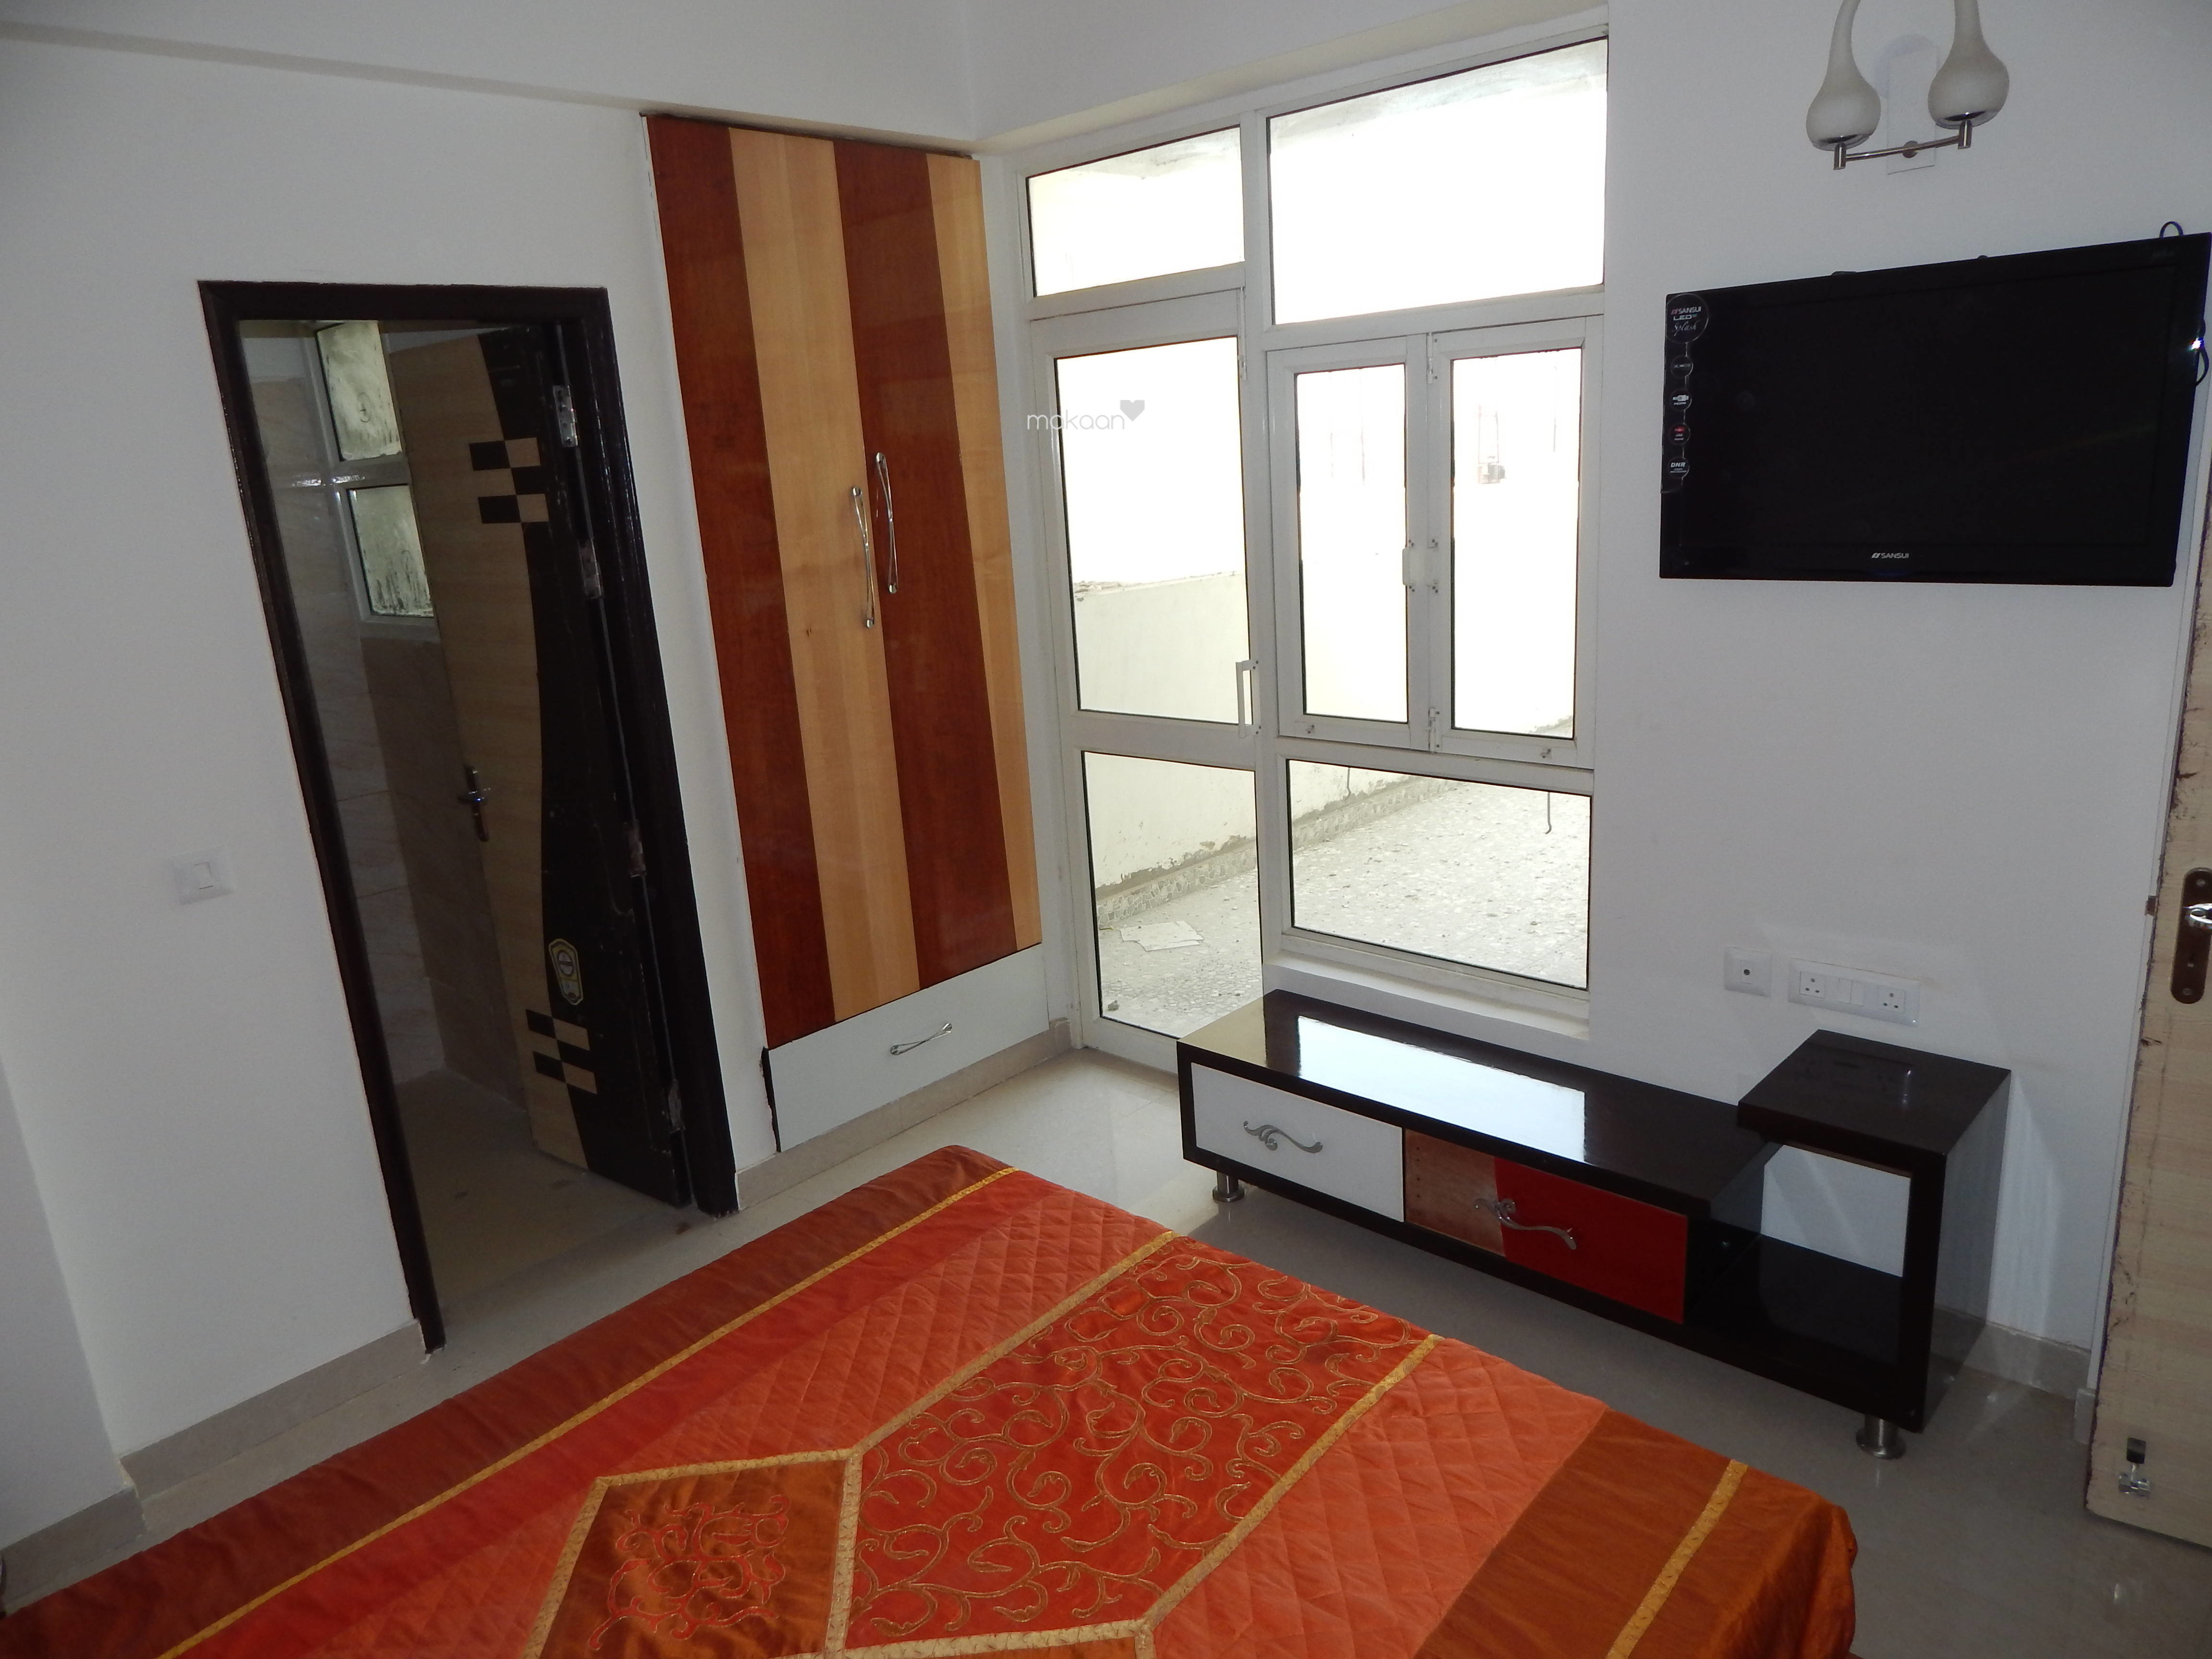 """{    """"0 : 00"""": """"makaan.com, find joy.  """",    """"0 : 03"""": """"makaan presents a beautiful residential apartment at SG Impressions 58 in Ghaziabad"""",    """"0 : 09"""": """"This property is located on 6 floor, is Ready to Move In, """",    """"0 : 14"""": """"Amenities include, Oil Bound Distemper """",    """"0 : 18"""": """" Wooden flooring in master bedroom  """",    """"0 : 22"""": """" Modular Kitchen with Granite Counter  """",    """"0 : 26"""": """" Vitrified Tiles in kitchen """",    """"0 : 30"""": """" Superior quality Ceramic Tiles"""",    """"0 : 33"""": """"this property was Launched in August 2008, has 396 apartments  and was completed in August 2014  According to our research, it has a Livability Score of 8.1,"""",    """"0 : 48"""": """"This property is brought to you by Real Heads Buildcon Pvt Ltd, a renowned seller in locality with a seller rating of 10"""",    """"0 : 55"""": """"  Are you interested? so lets meet soon to discuss your requirements  """"}"""